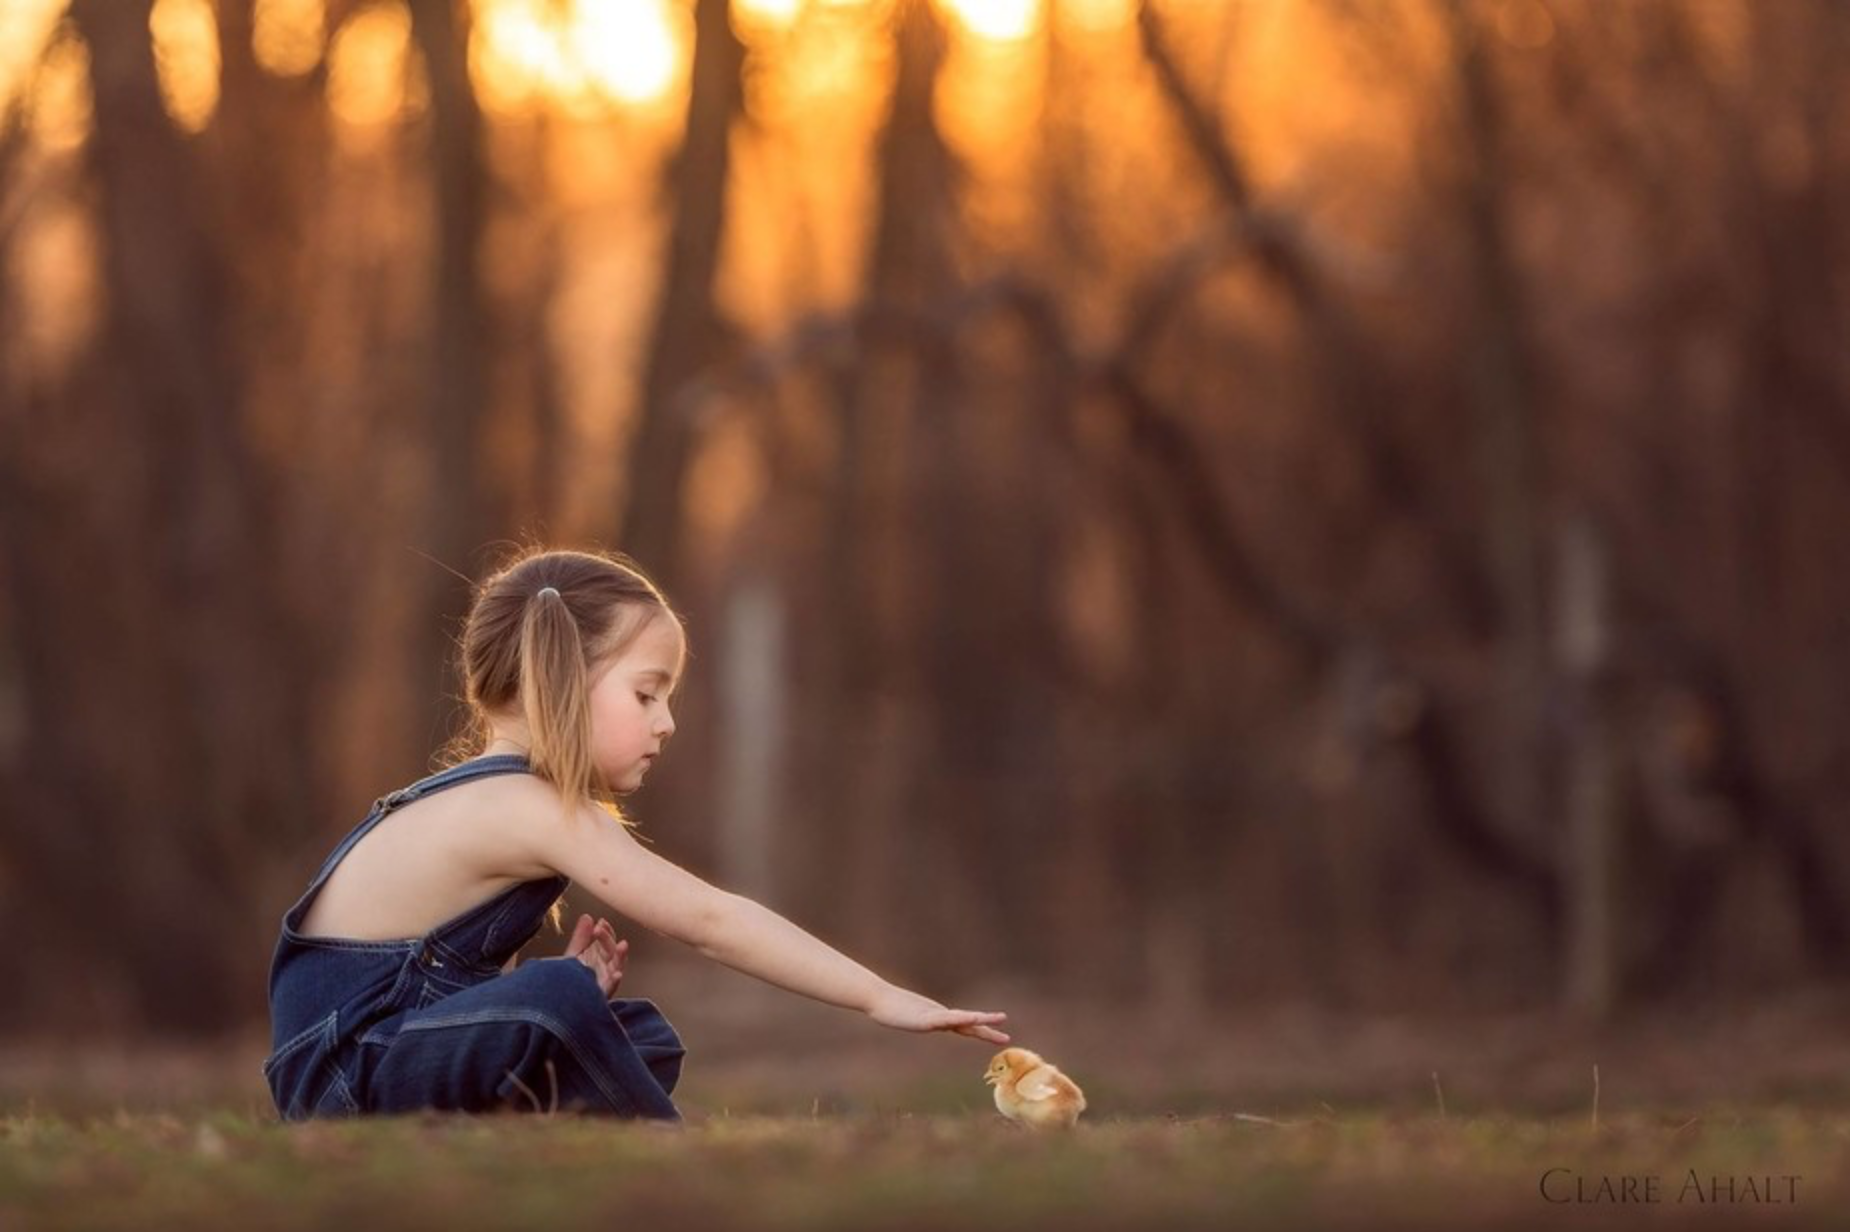 Photograph of a little girl in a field with a baby chick, photographed on a farm in Maryland by Clare Ahalt Photography, a fine art photographer located in central Maryland, specializing in fine art child portraiture and high school senior portraits.